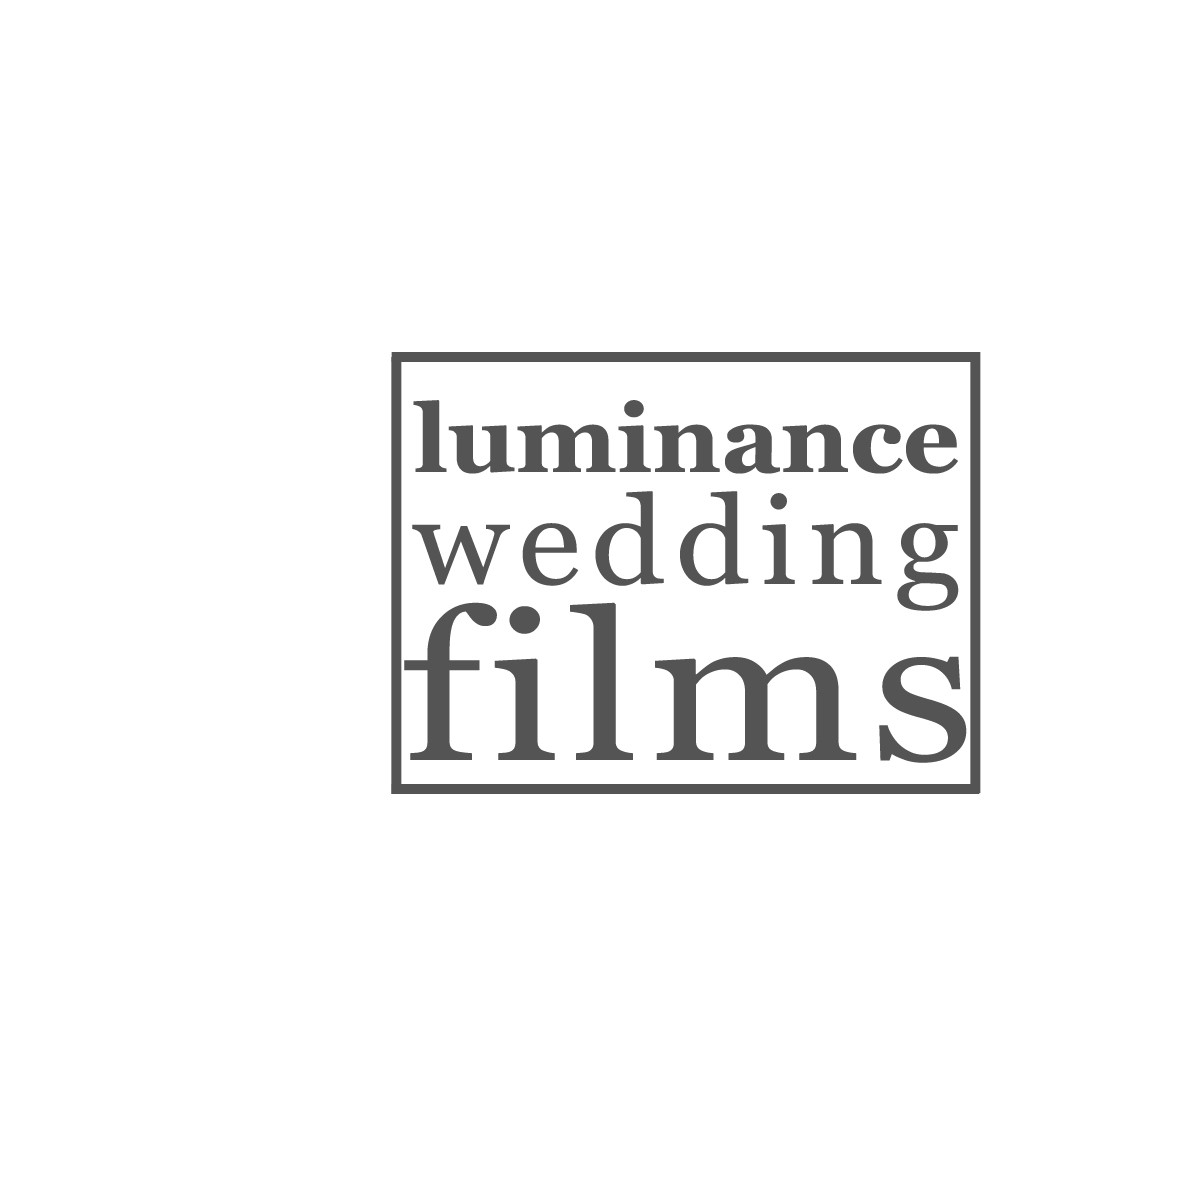 Investment| Albuquerque | Luminance Wedding Films